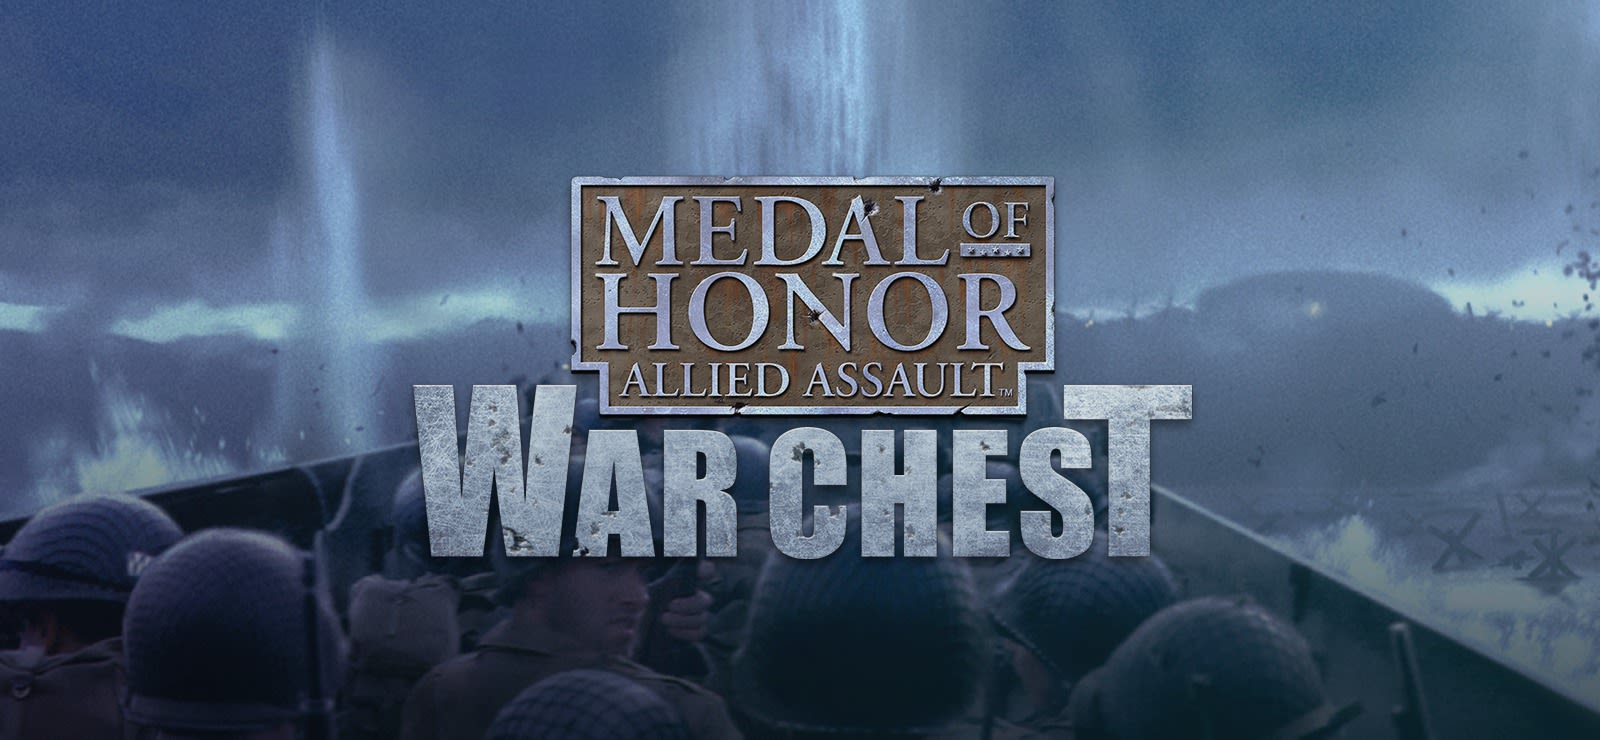 Medal Of Honor: Allied Assault War Chest varies-with-device